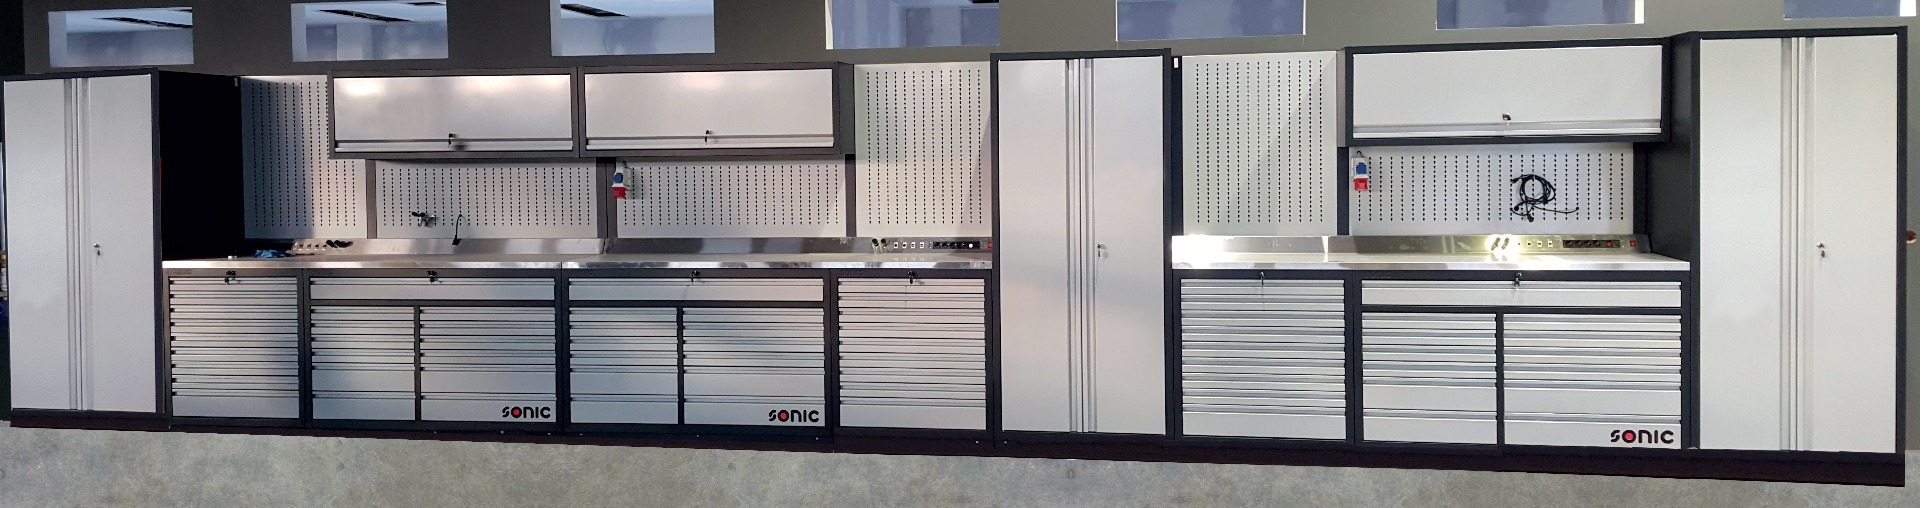 ABC Supply MSS Cabinets